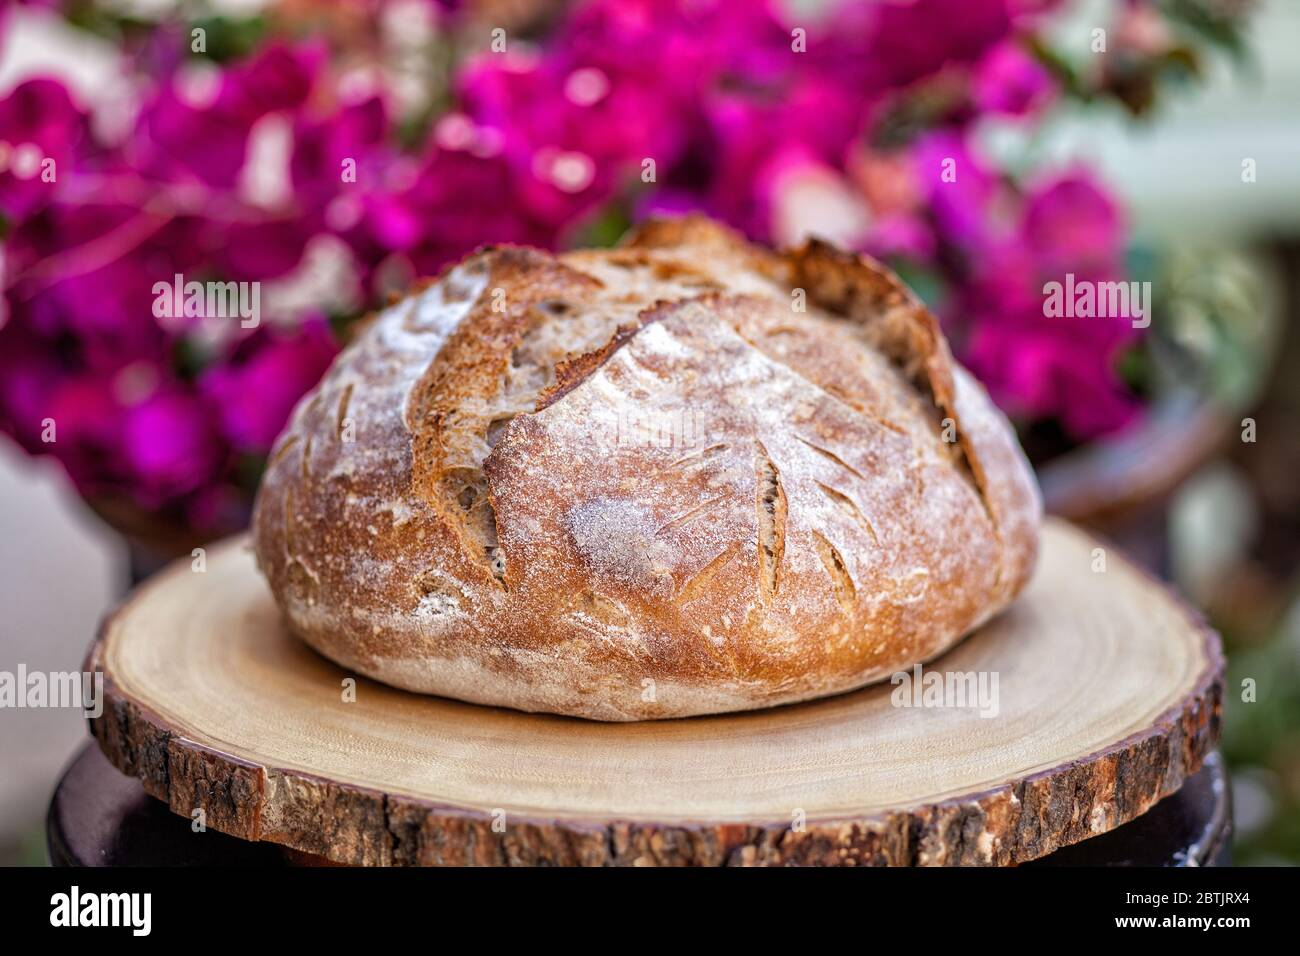 Artisan loaf of traditional Homemade sourdough Boule bread with crust on a wooden board Stock Photo